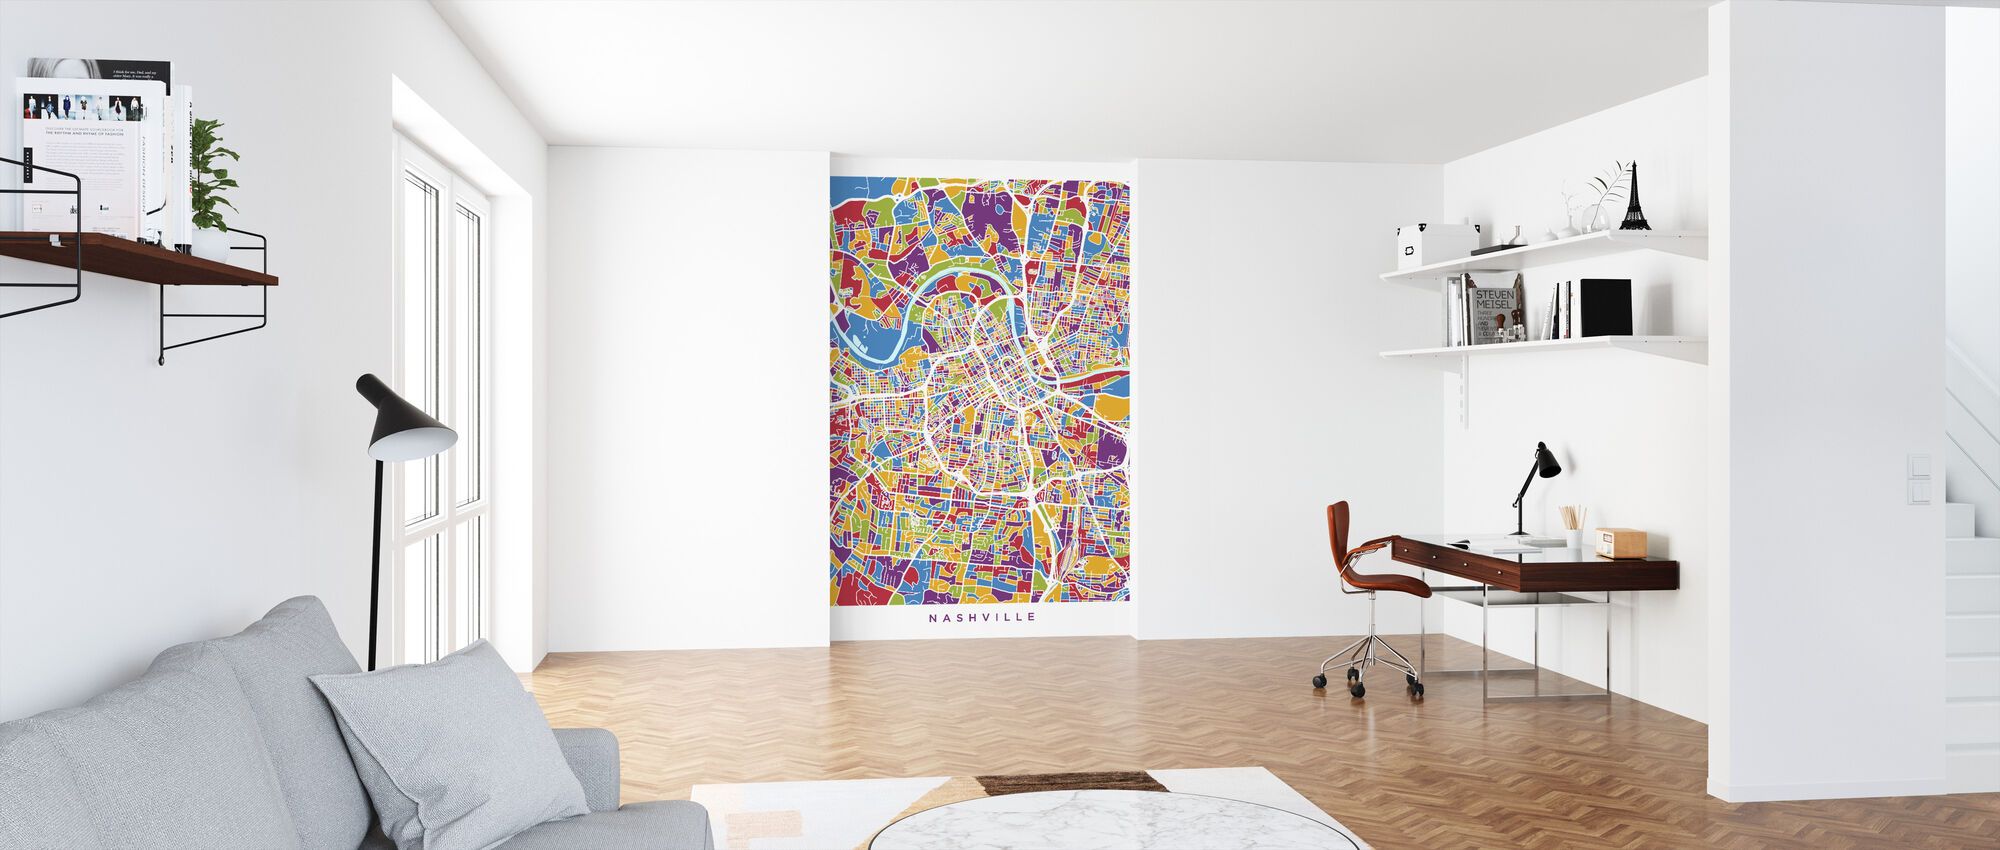 Nashville Tennessee City Map - Wallpaper - Office